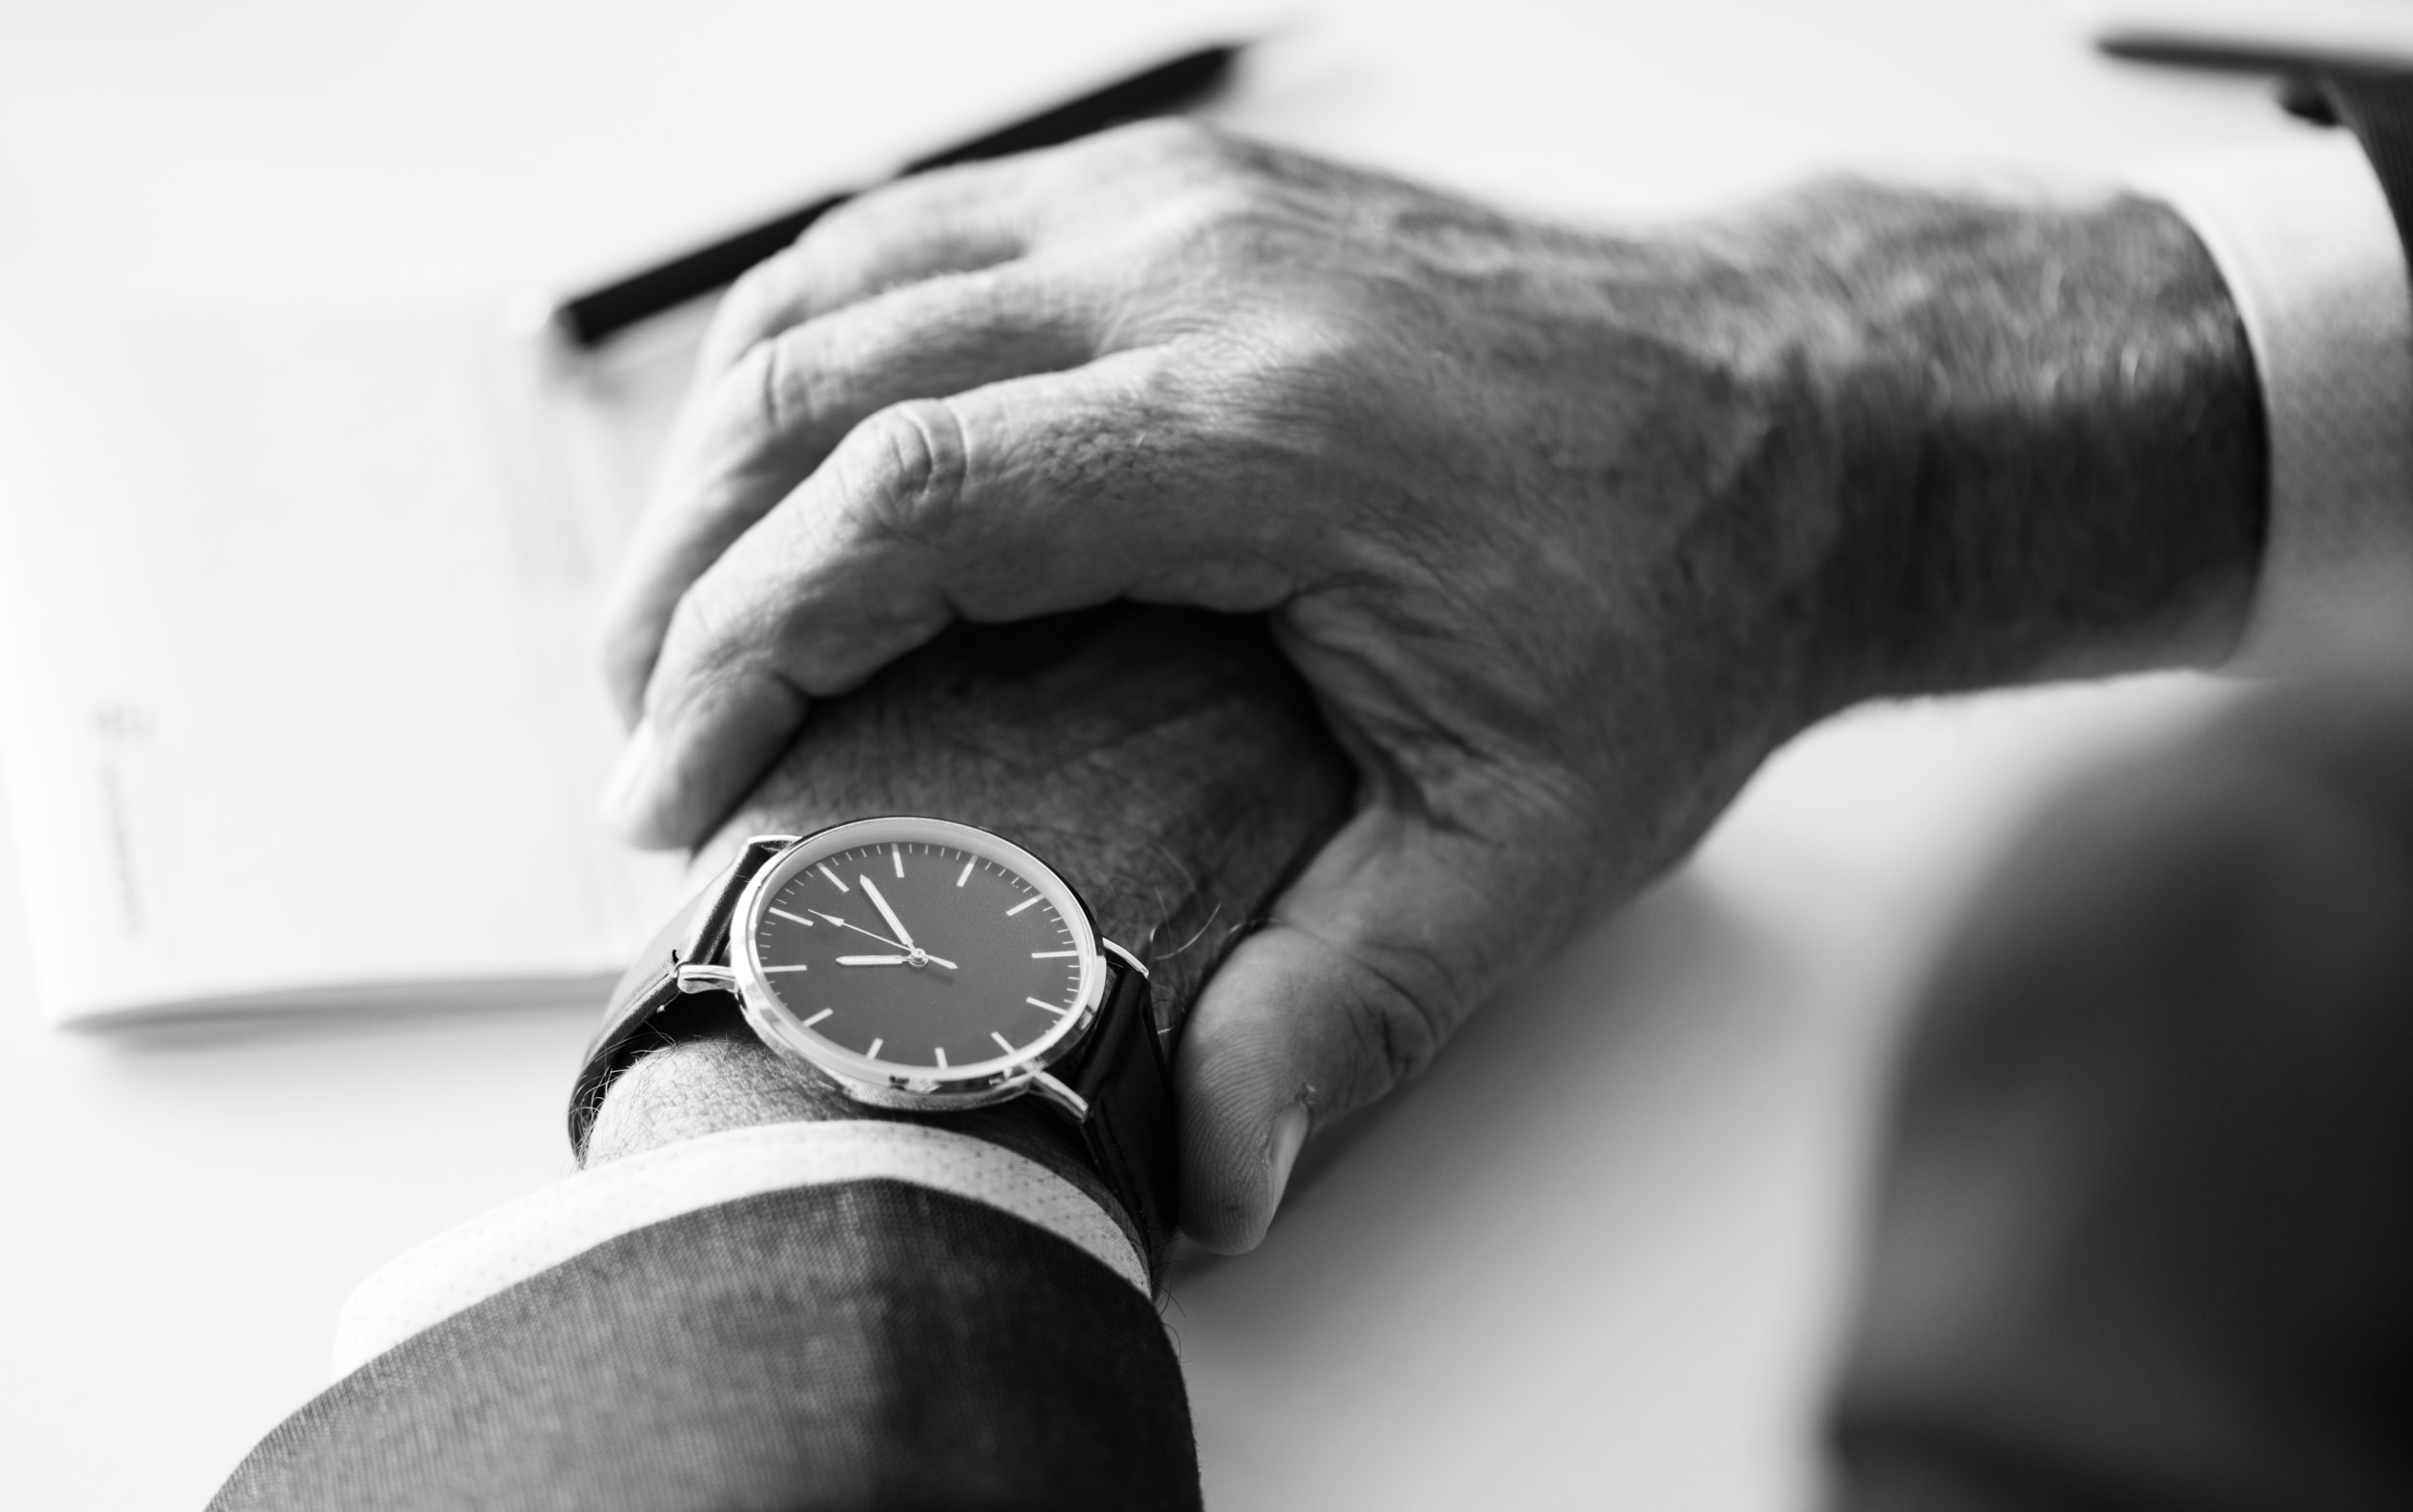 grayscale photography of person holding watch